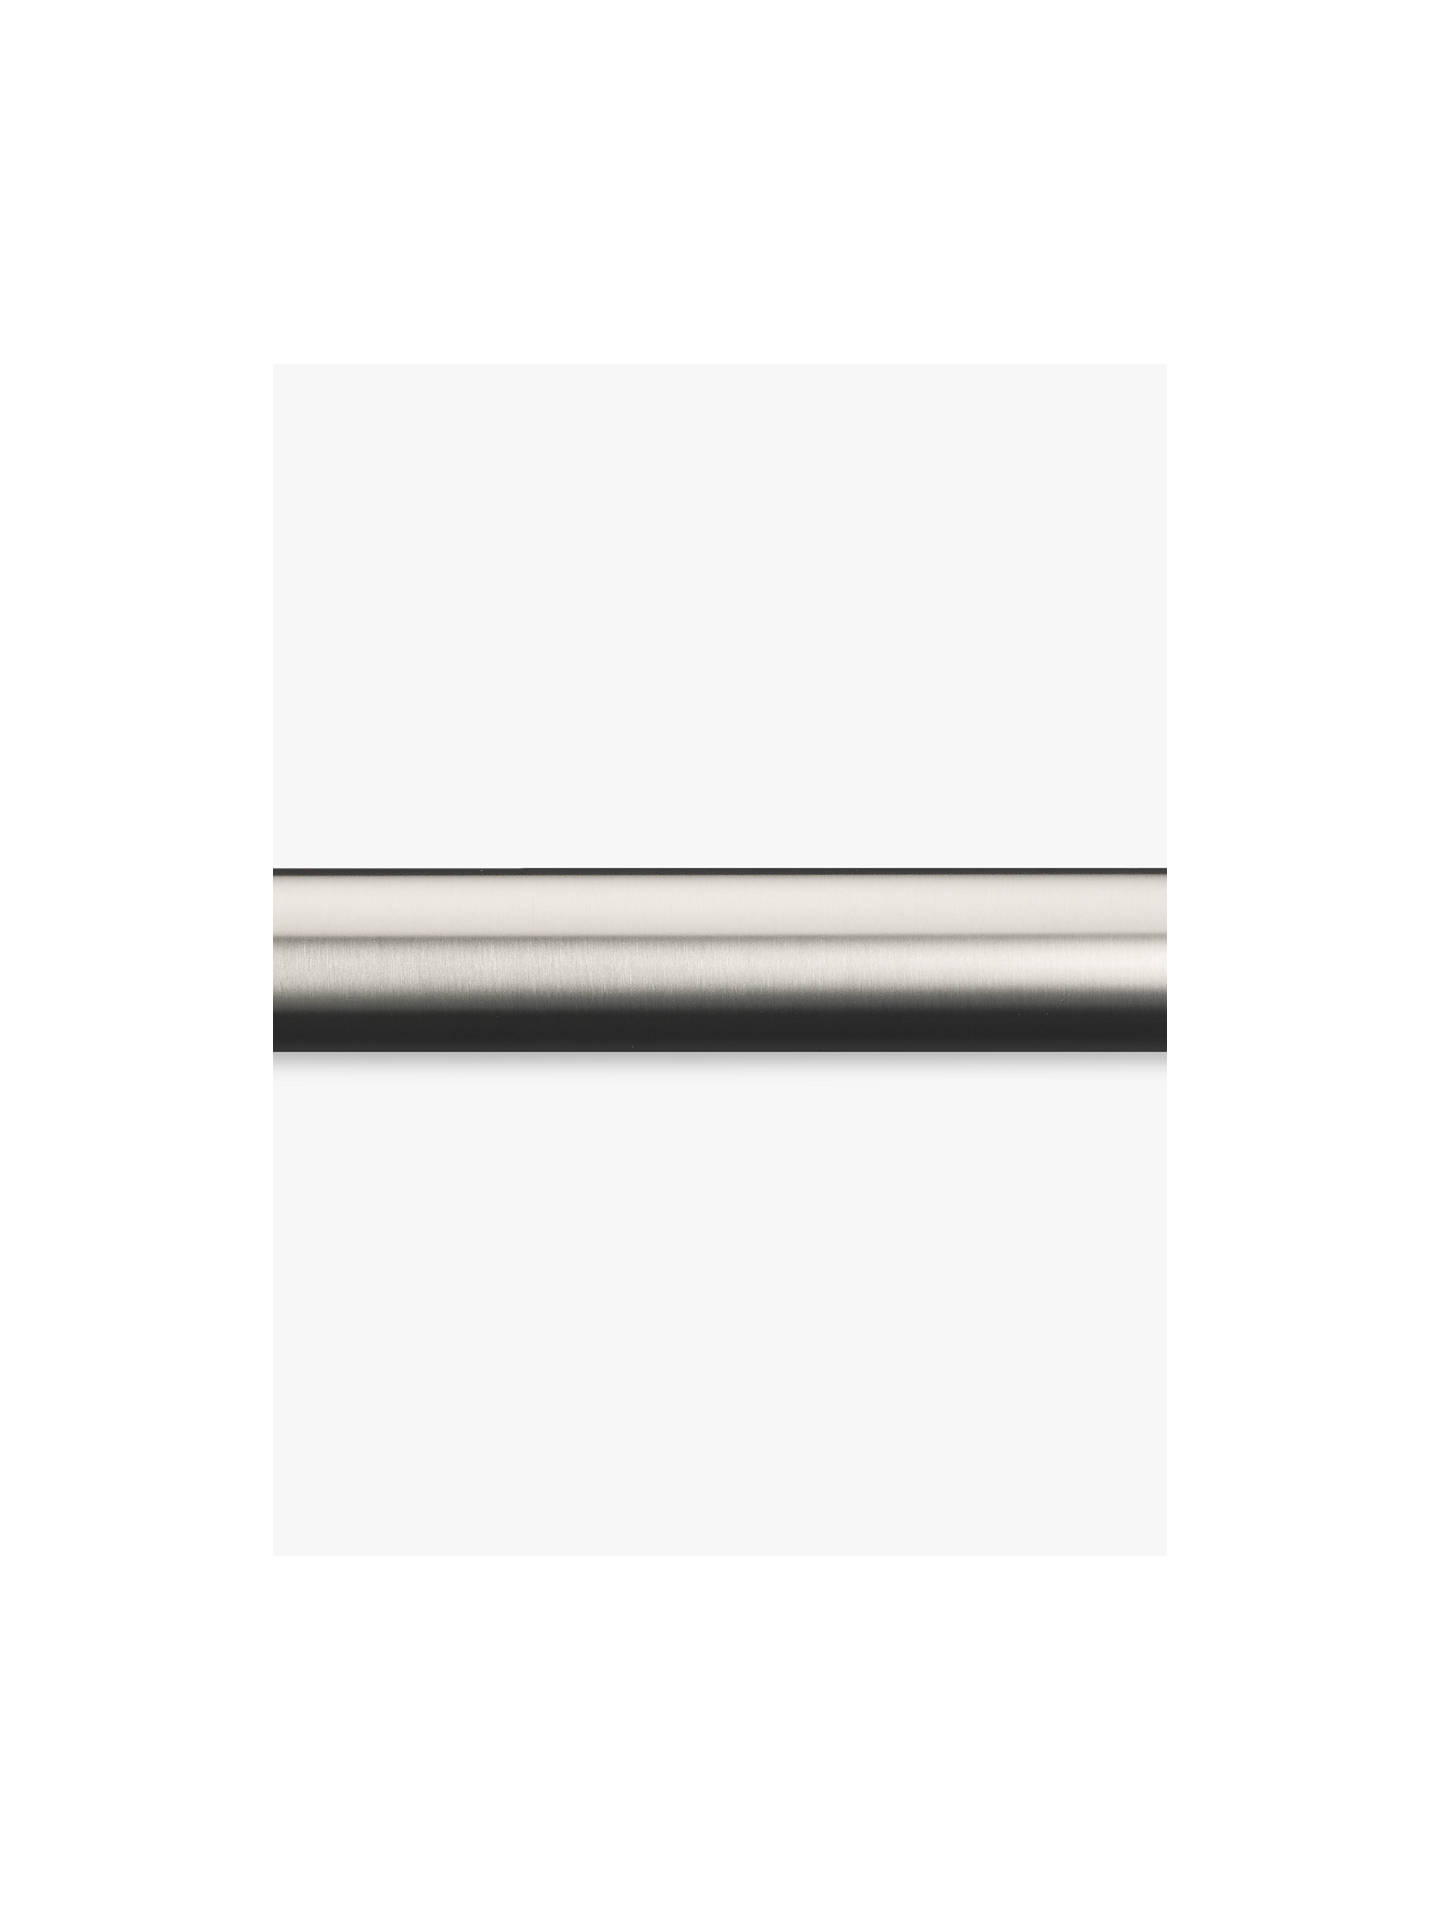 Buy John Lewis & Partners Stainless Steel Curtain Pole, L120cm x Dia.30mm Online at johnlewis.com